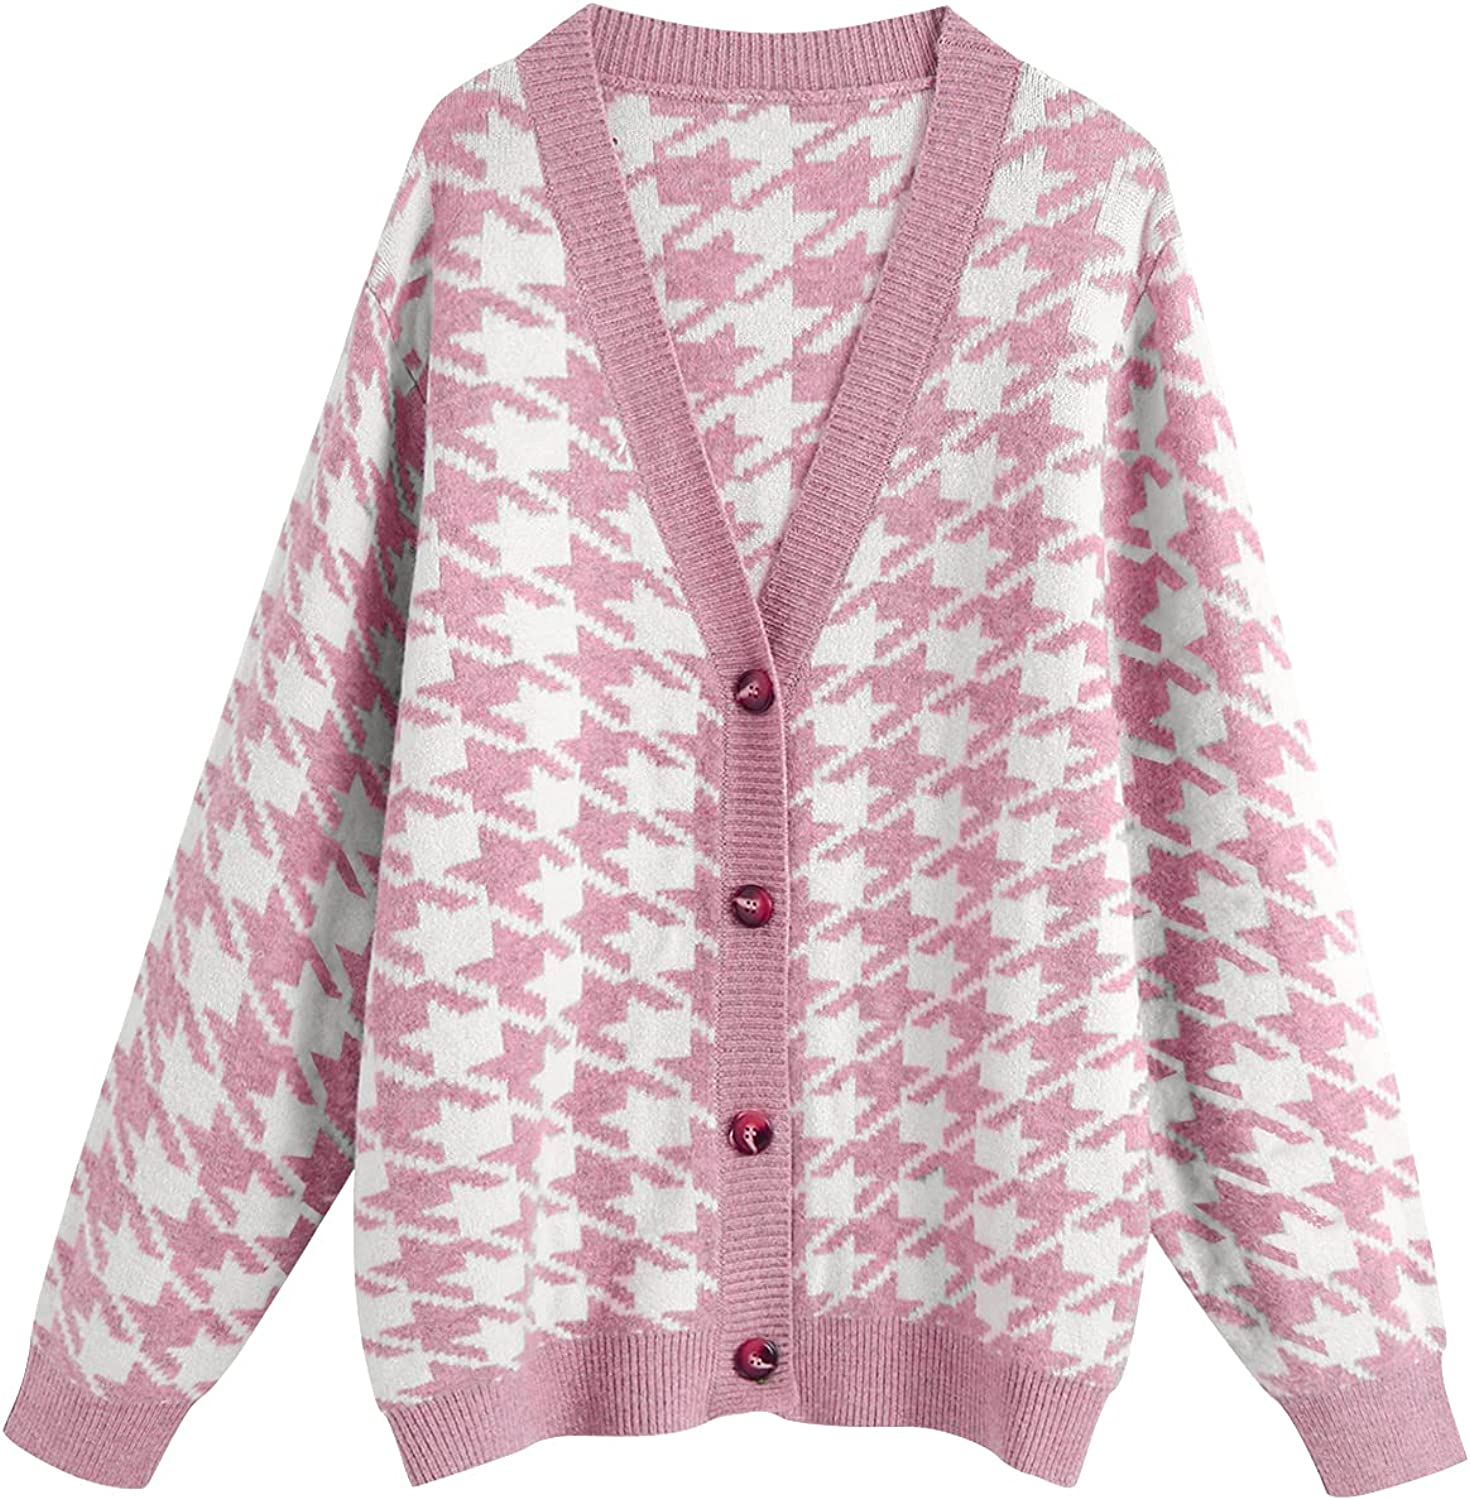 SAFRISIOR Women's Houndstooth Knitted Oversize Sweater Cardigan V Neck Drop Shoulder Button Down Sweater Pullover